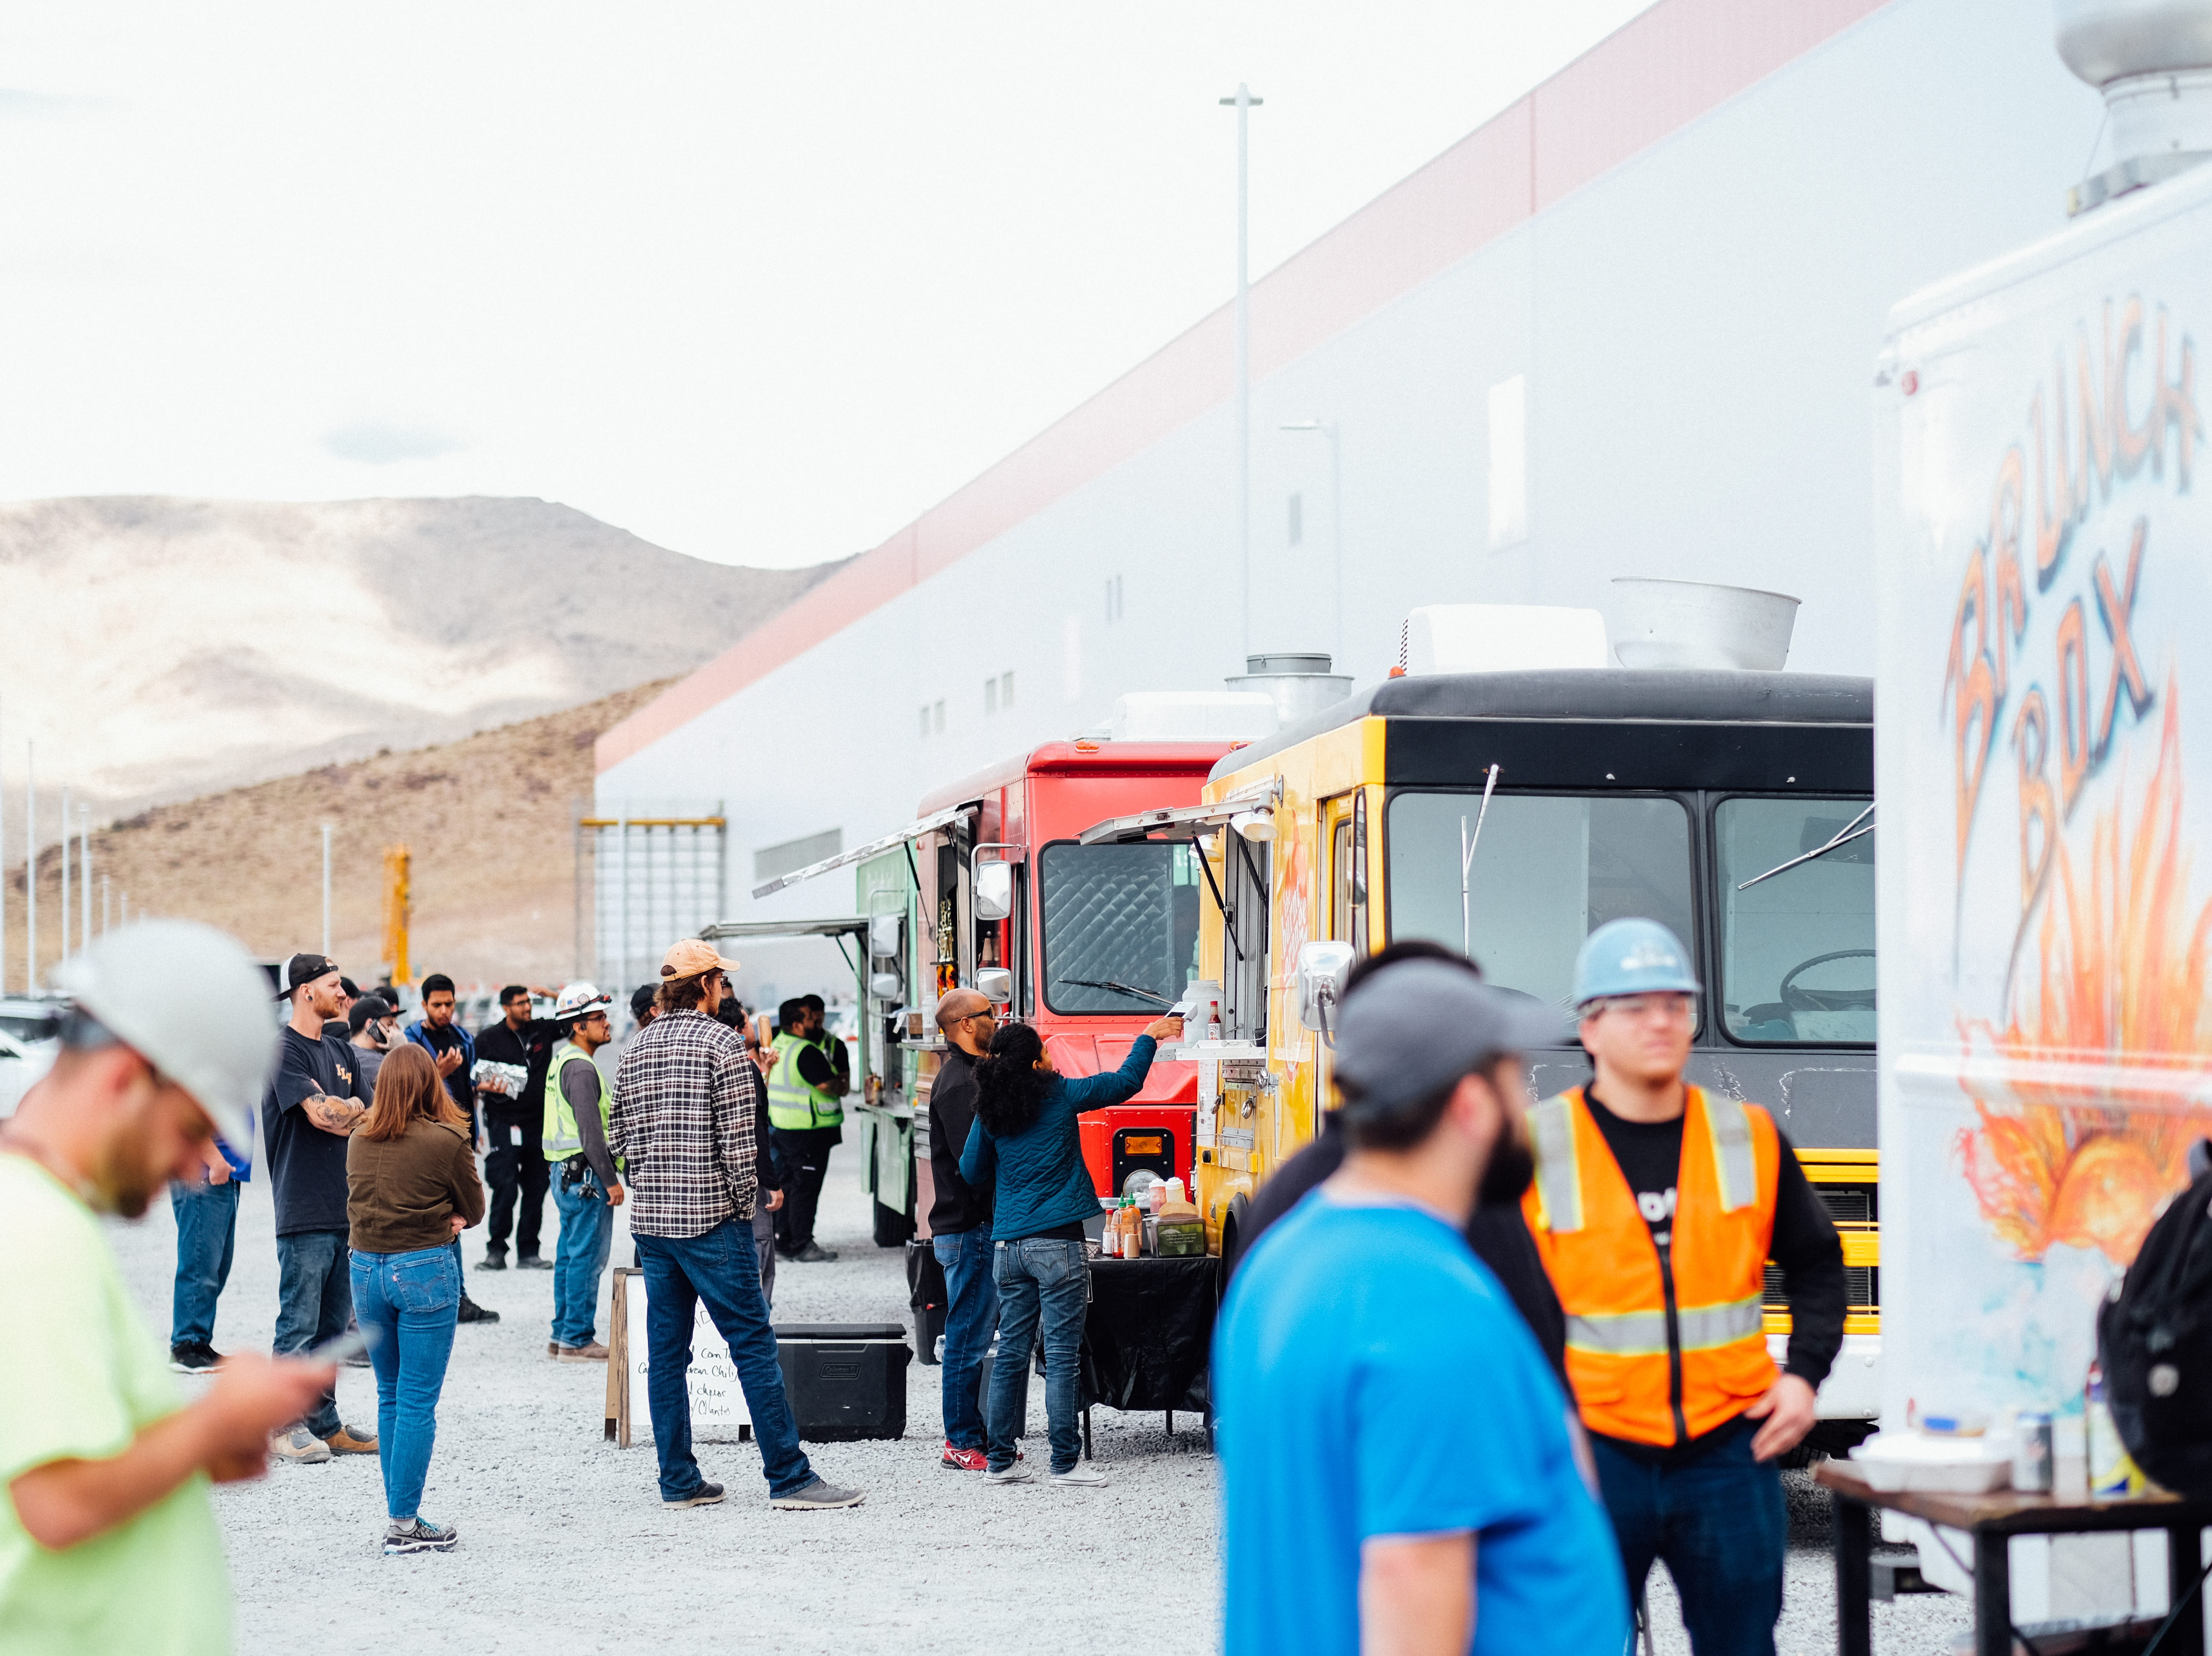 About 20 food trucks rotate regularly at the Tesla Gigafactory east of Reno, helping to feed many of the 7,000-plus employees.